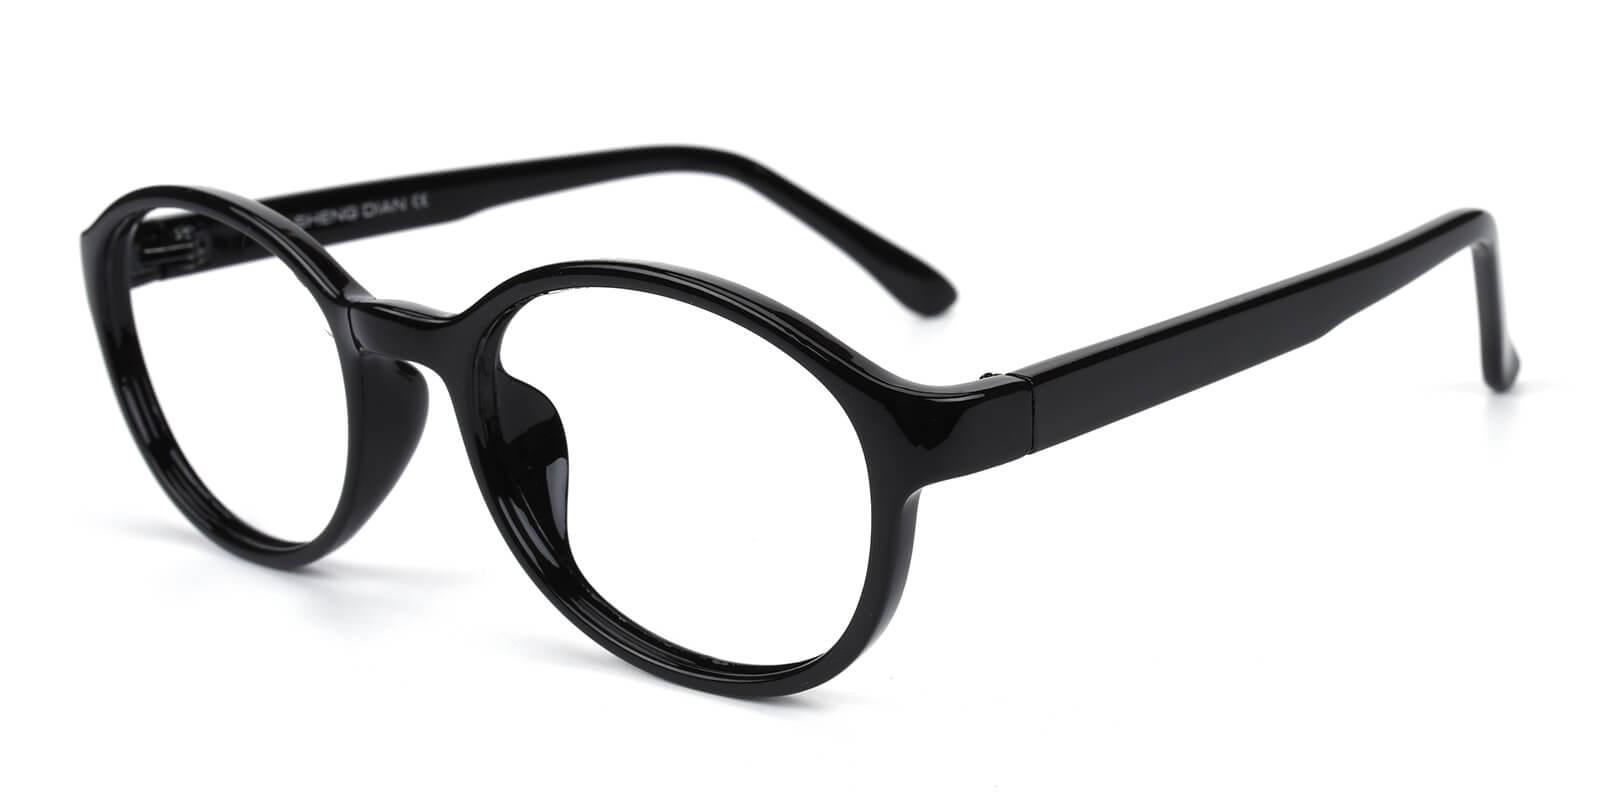 Achiever-Black-Round-Plastic-Eyeglasses-additional1